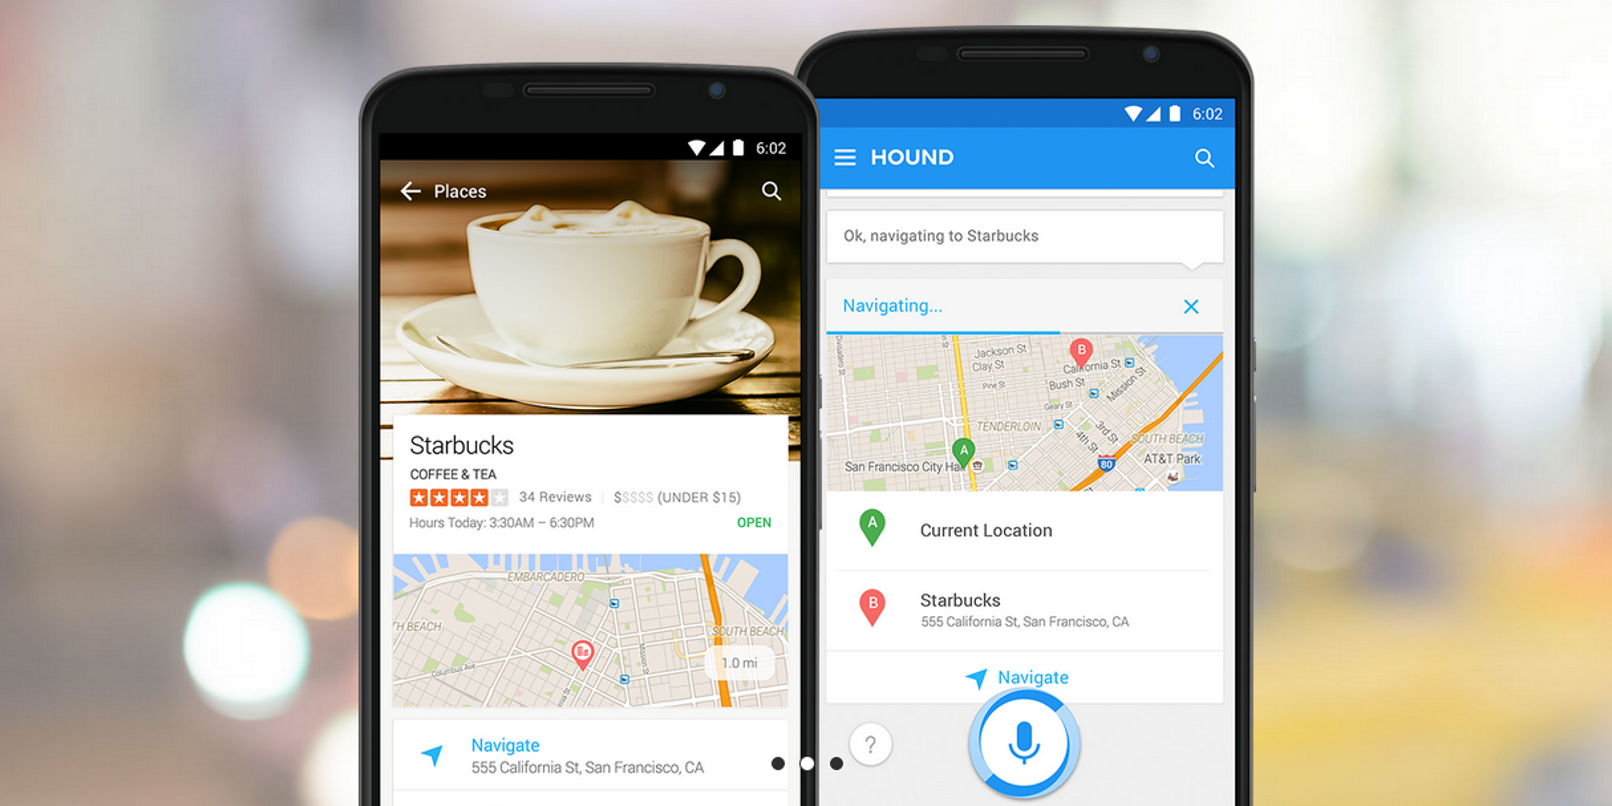 SoundHound launches a voice-controlled personal assistant called Hound